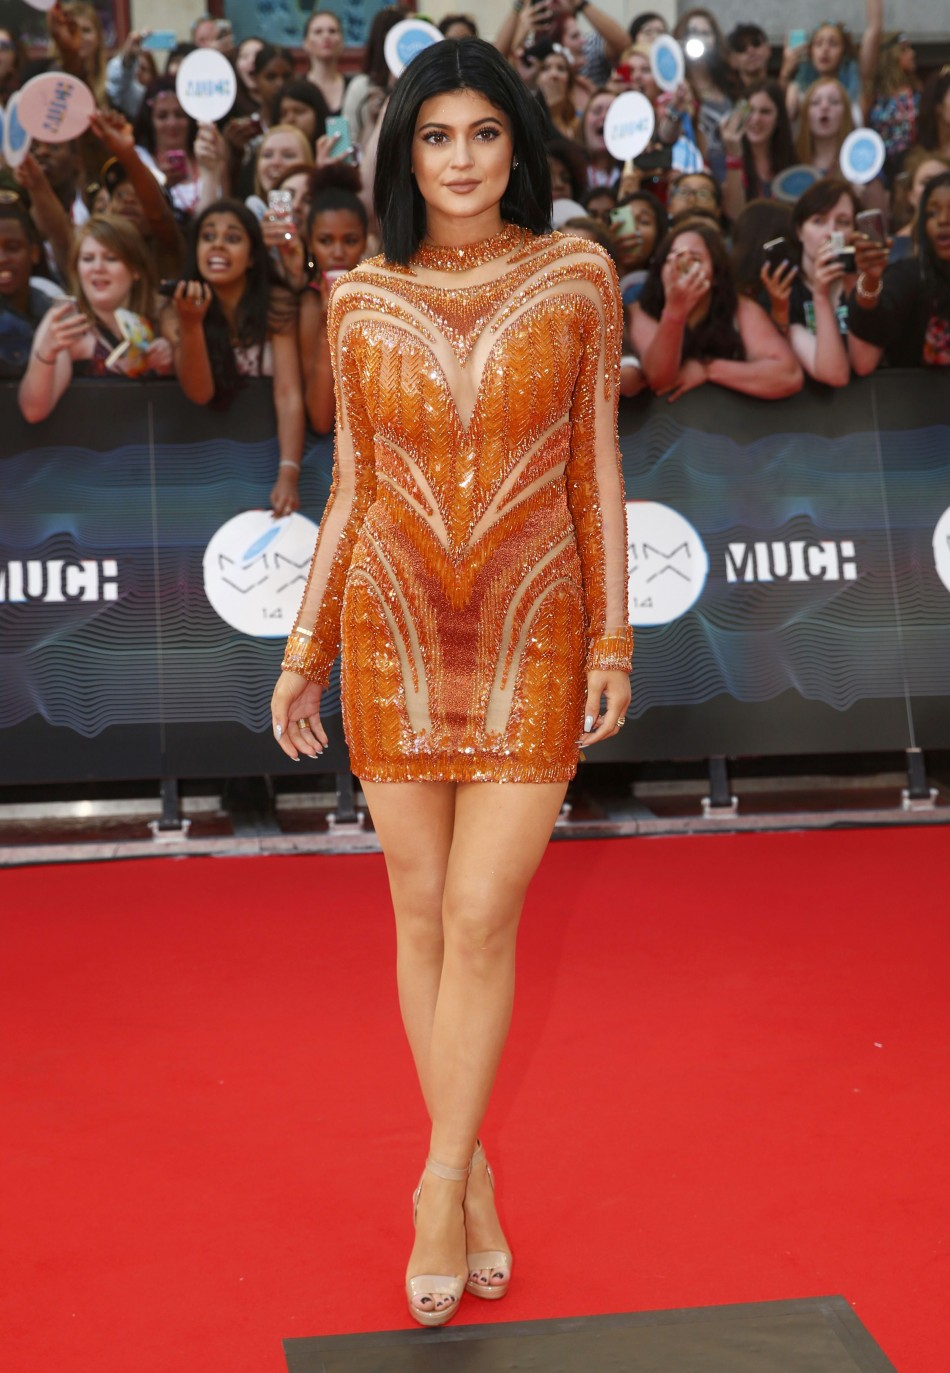 447759-kylie-jenner-arrives-on-the-red-carpet-to-host-the-muchmusic-video-awa